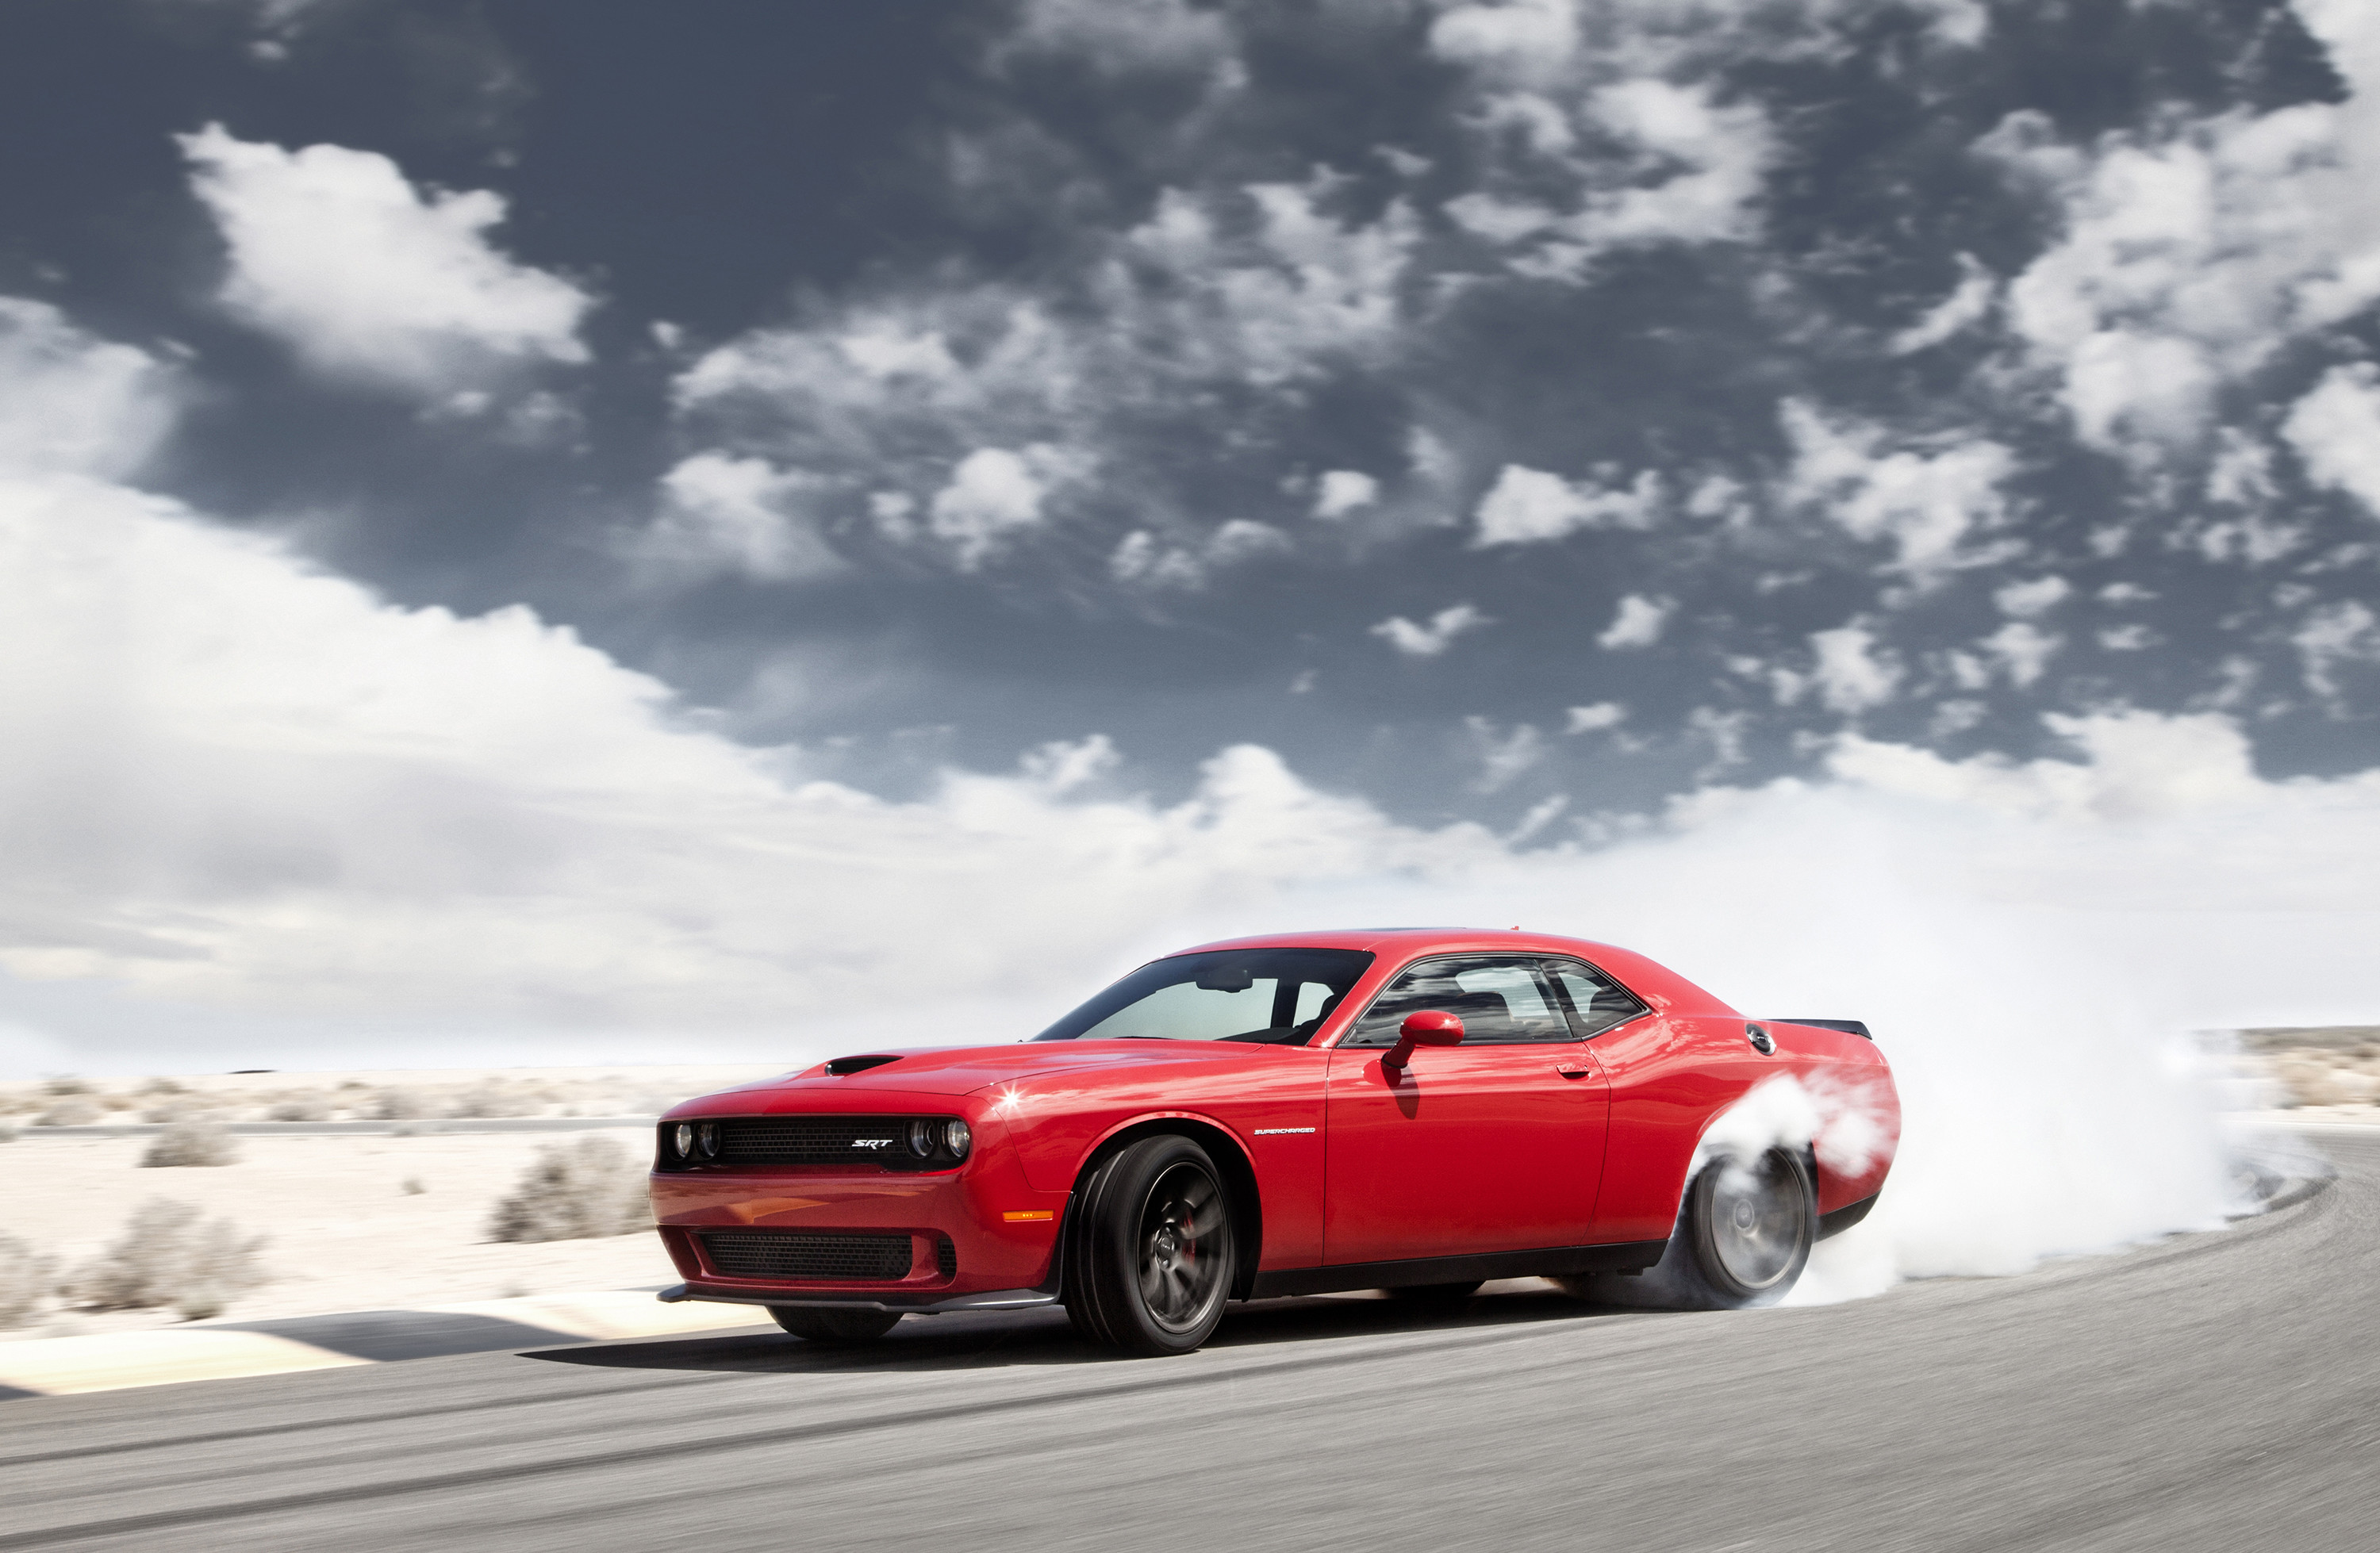 2015 Dodge Challenger SRT Hellcat gets 707 horsepower, shows off in new  video – Autoweek